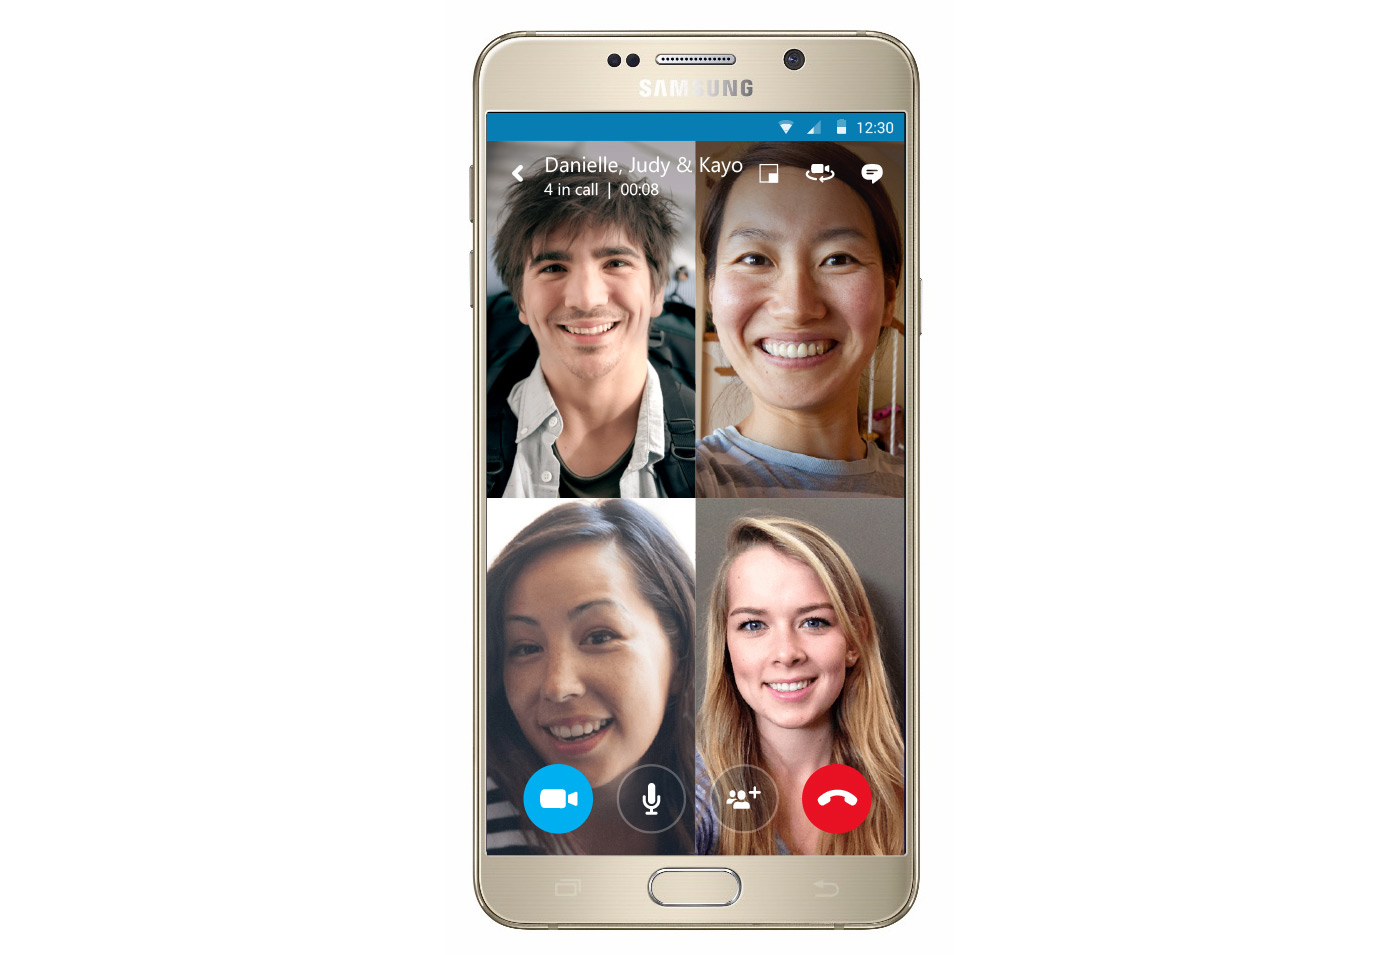 Group video calling in Skype for Android